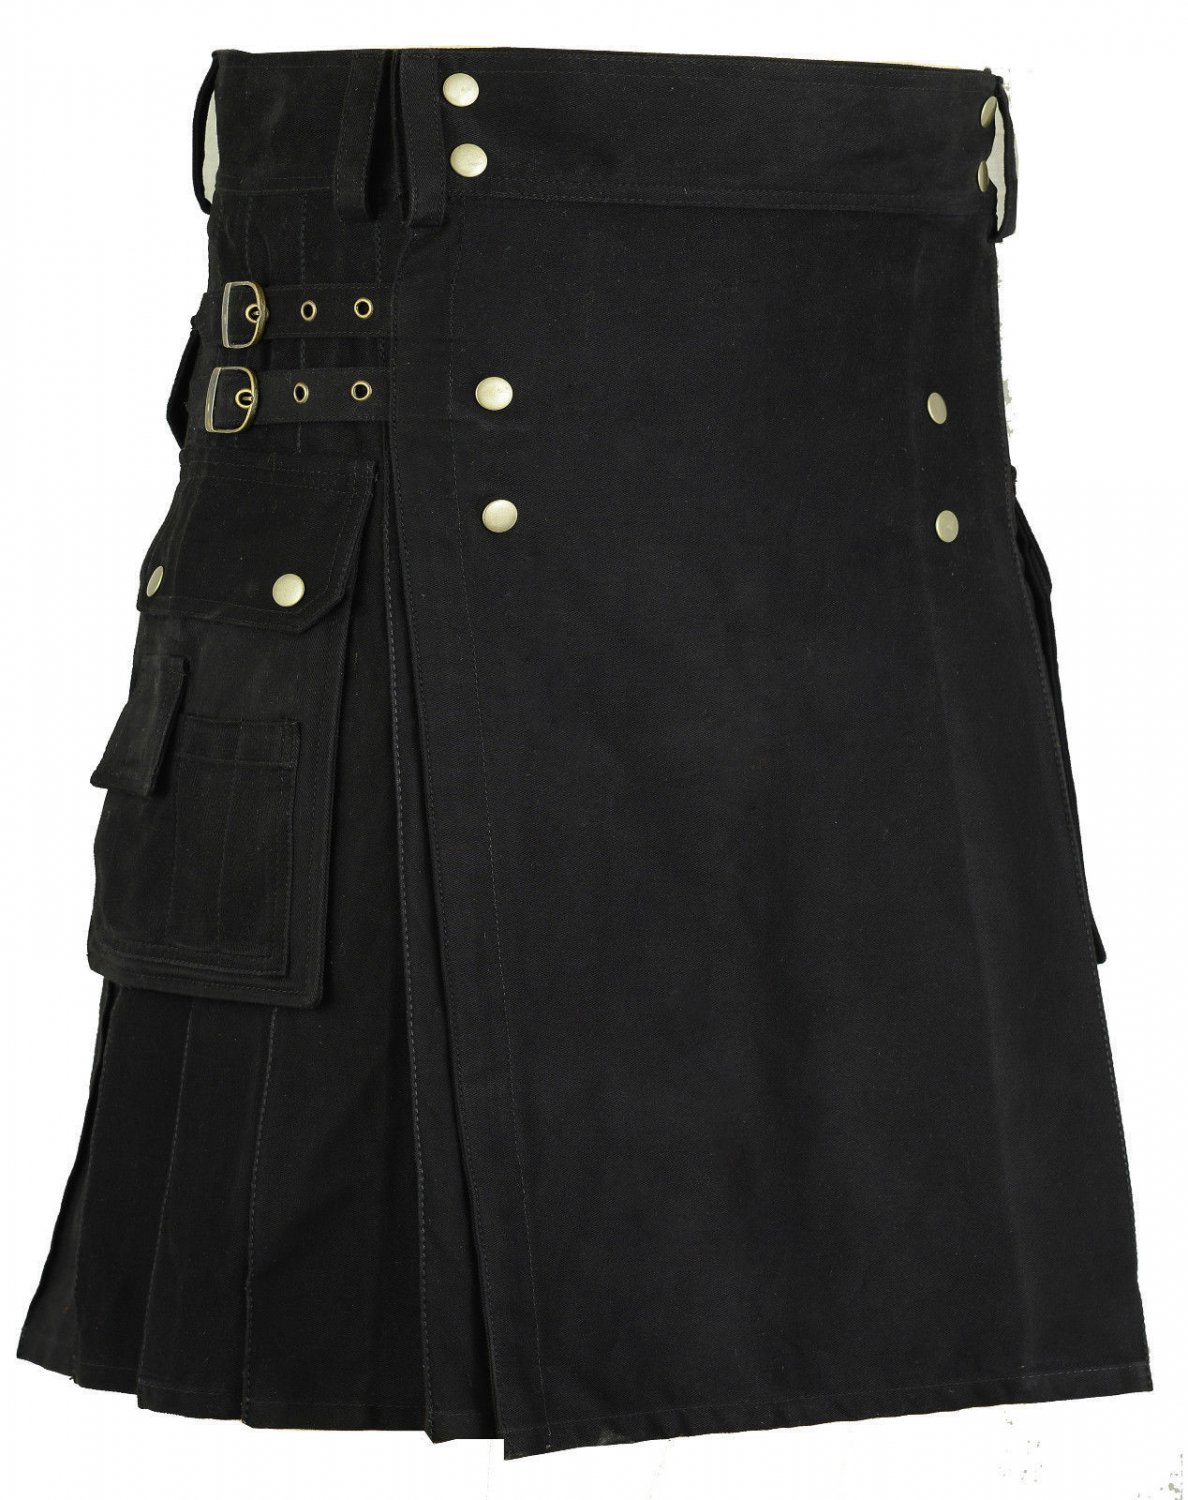 Size 30 New Scottish Cotton Kilt Deluxe Goth Outdoor Utility Kilts Highland Skirt